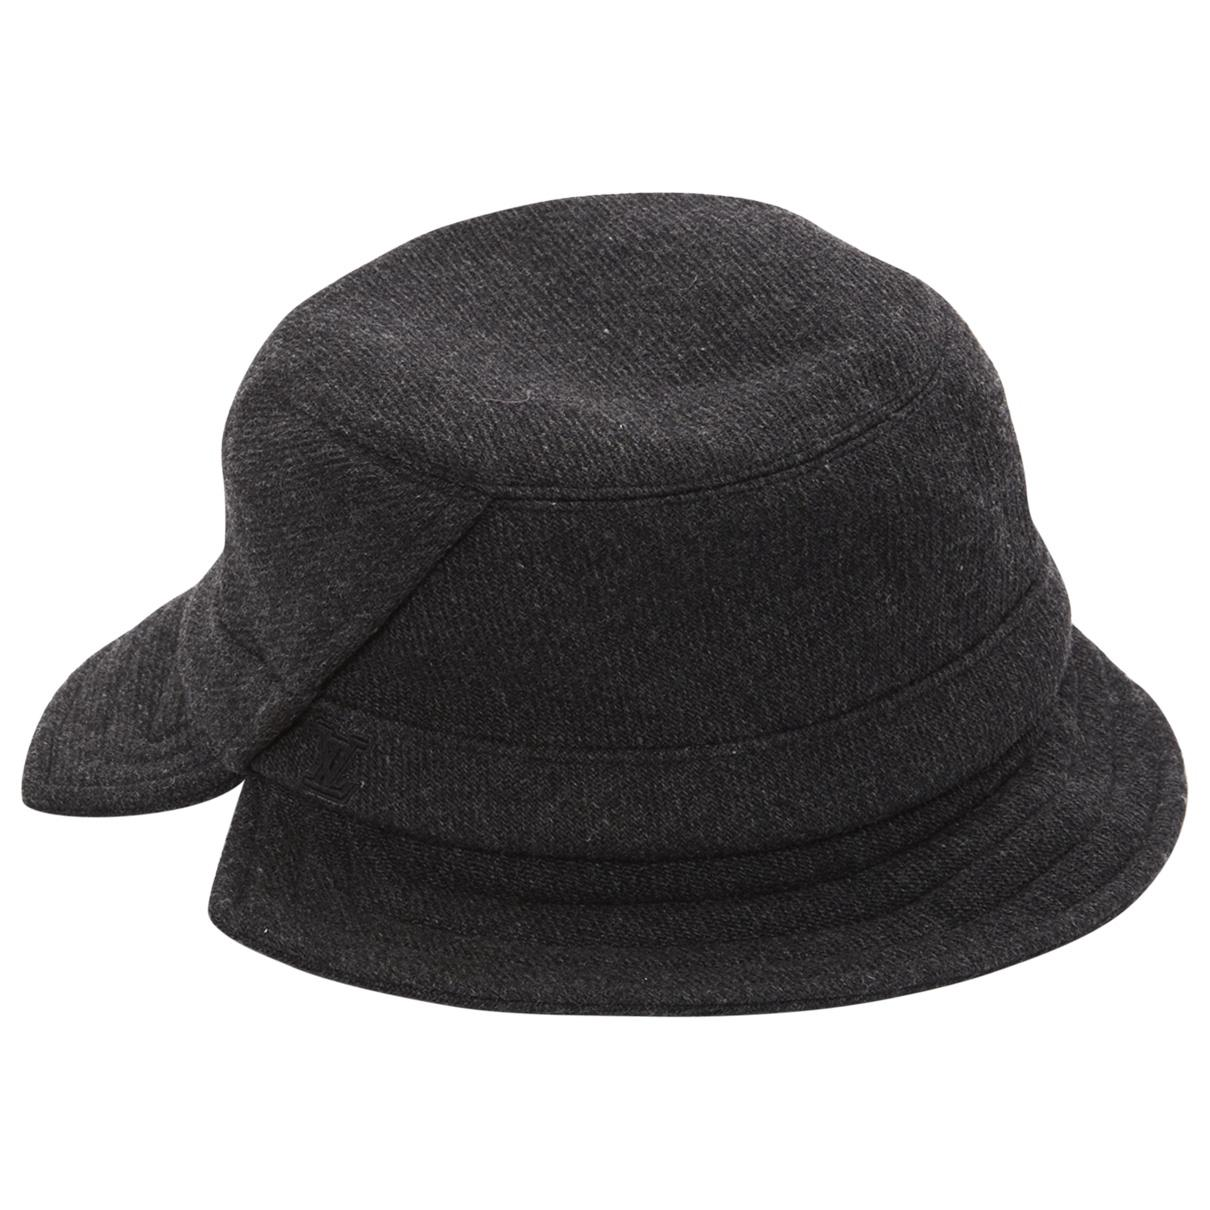 8bf0730b10ad0 Louis Vuitton. Women s Anthracite Wool Hats.  509  458 From Vestiaire  Collective